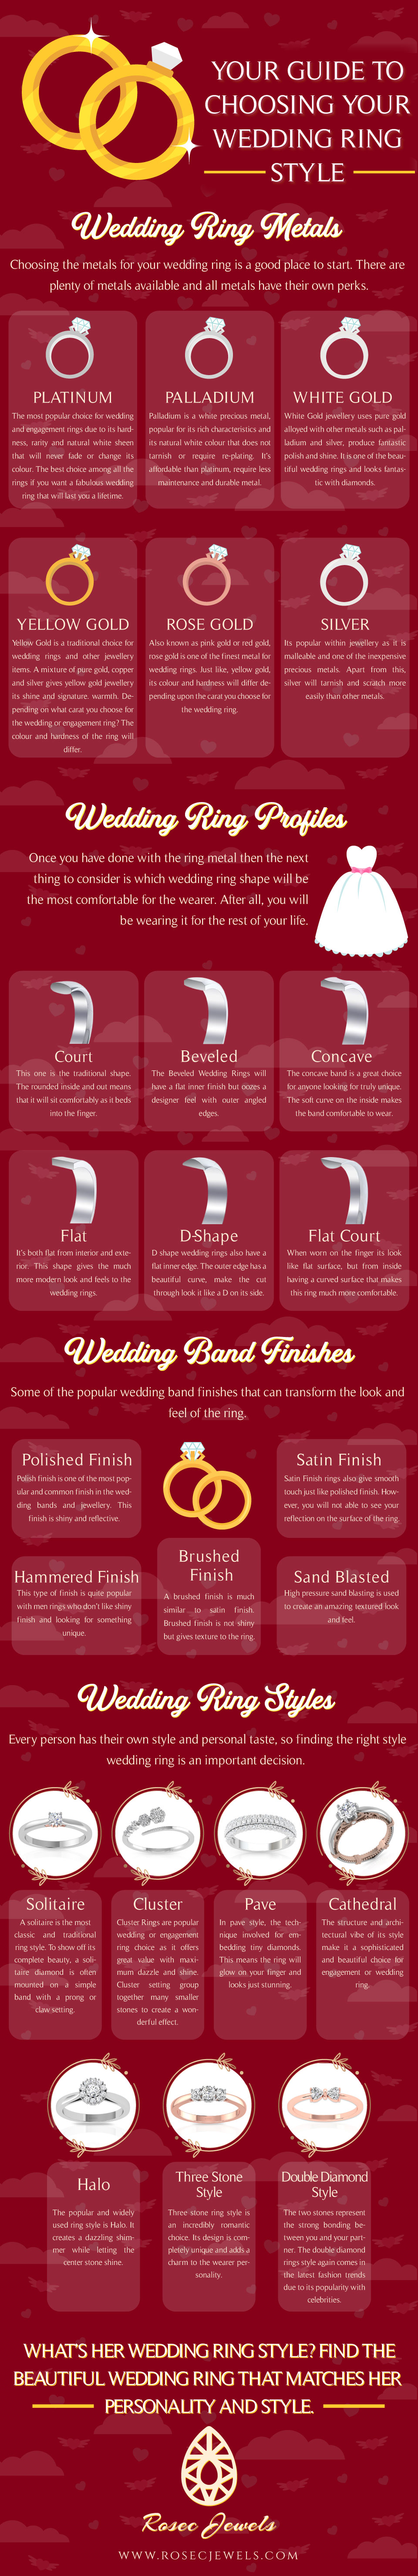 Guide to Choosing Your Wedding Ring Style